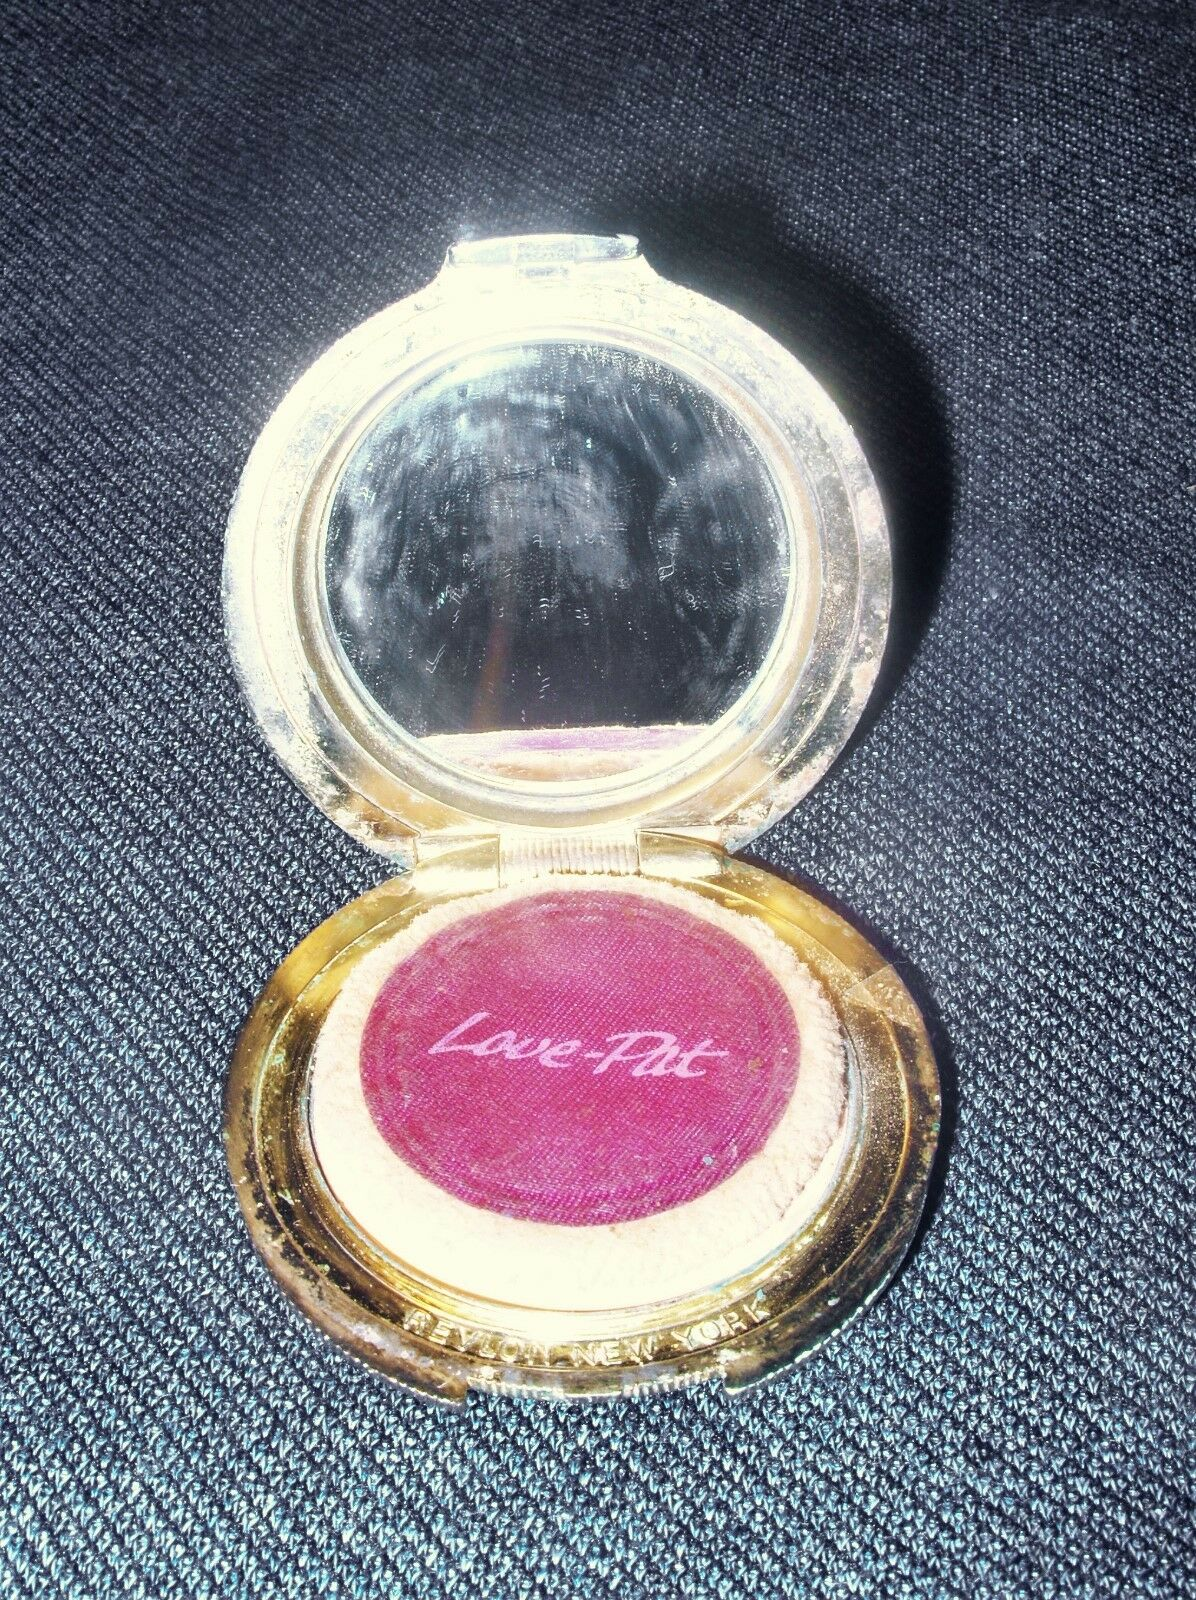 Vintage Revlon Goldtone Love Pat Powder Compact with Puff 2 Oz. Size VGUC